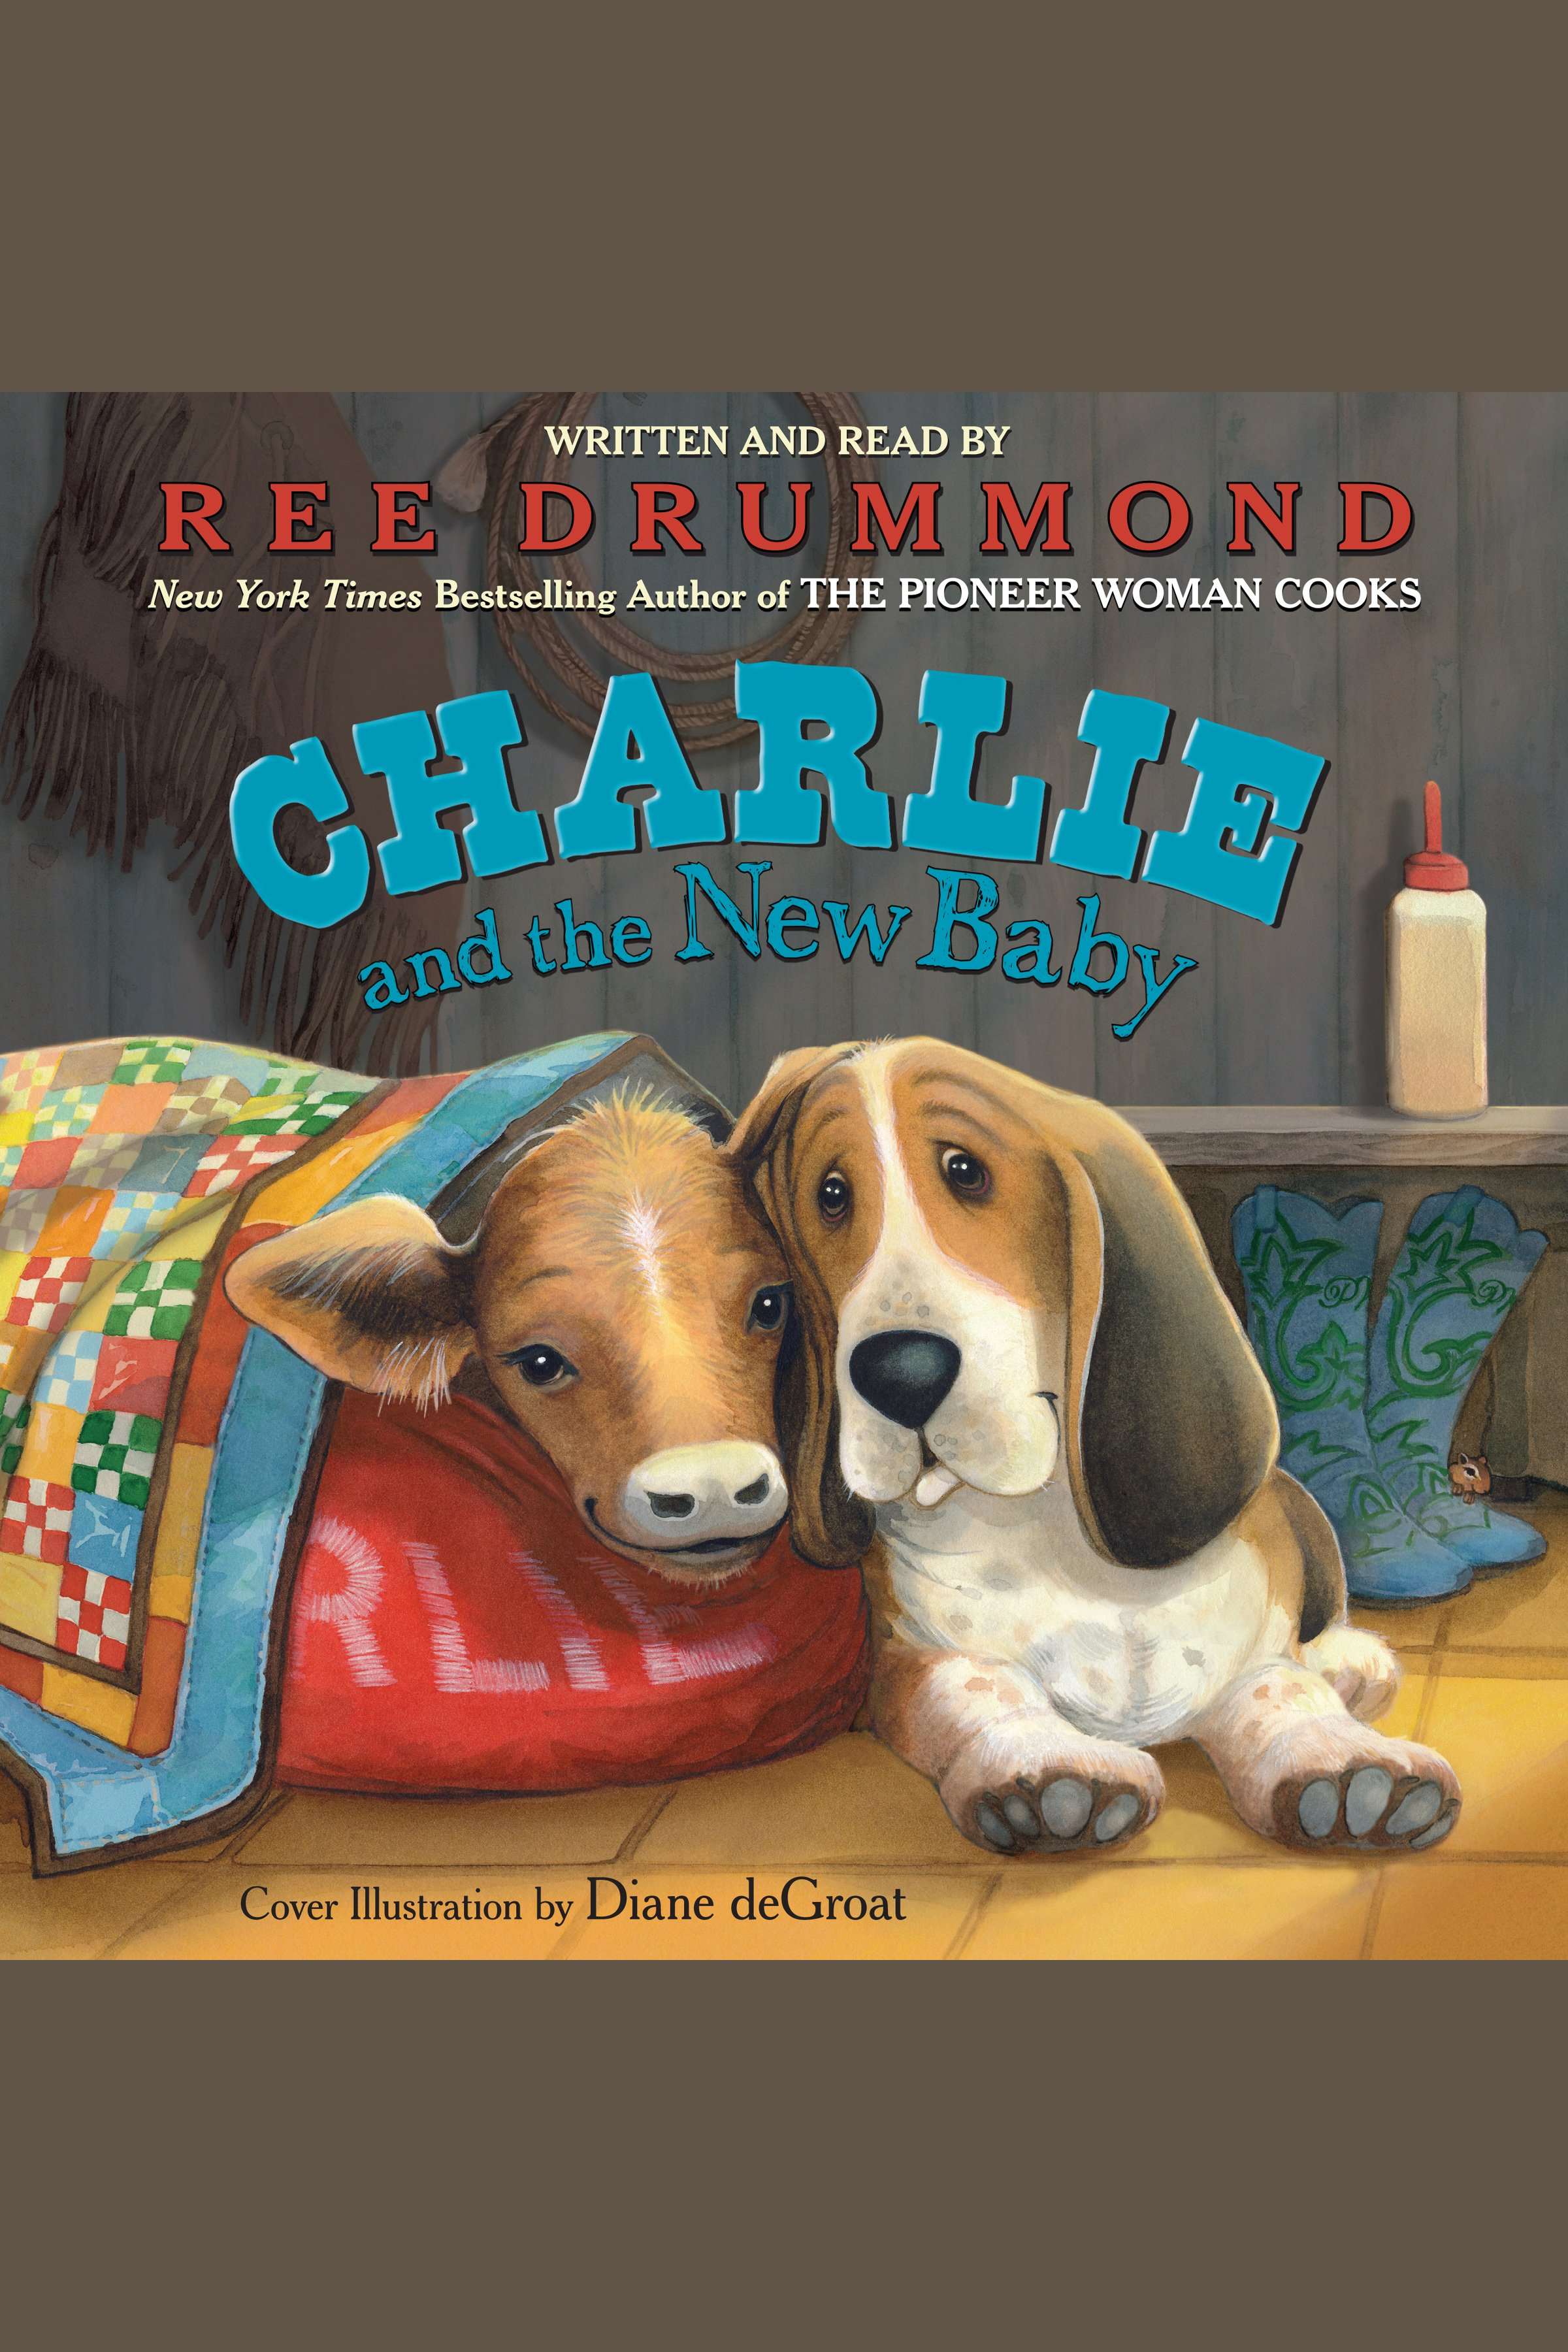 Charlie and the new baby cover image